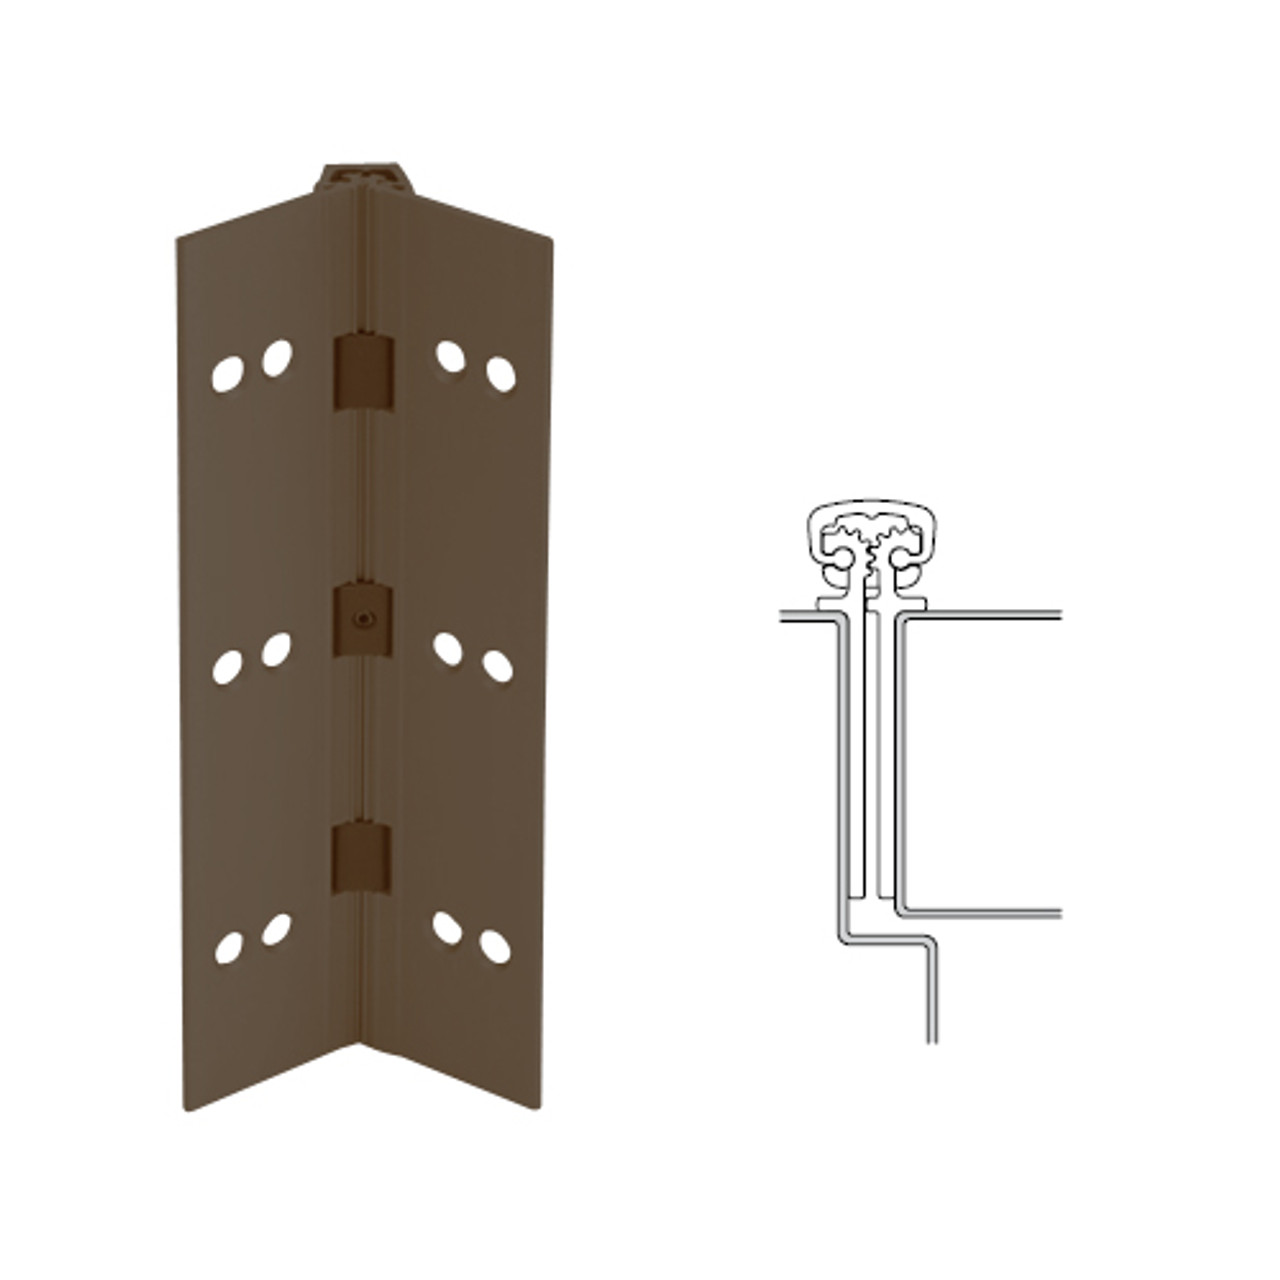 027XY-313AN-83-EPT IVES Full Mortise Continuous Geared Hinges with Electrical Power Transfer Prep in Dark Bronze Anodized